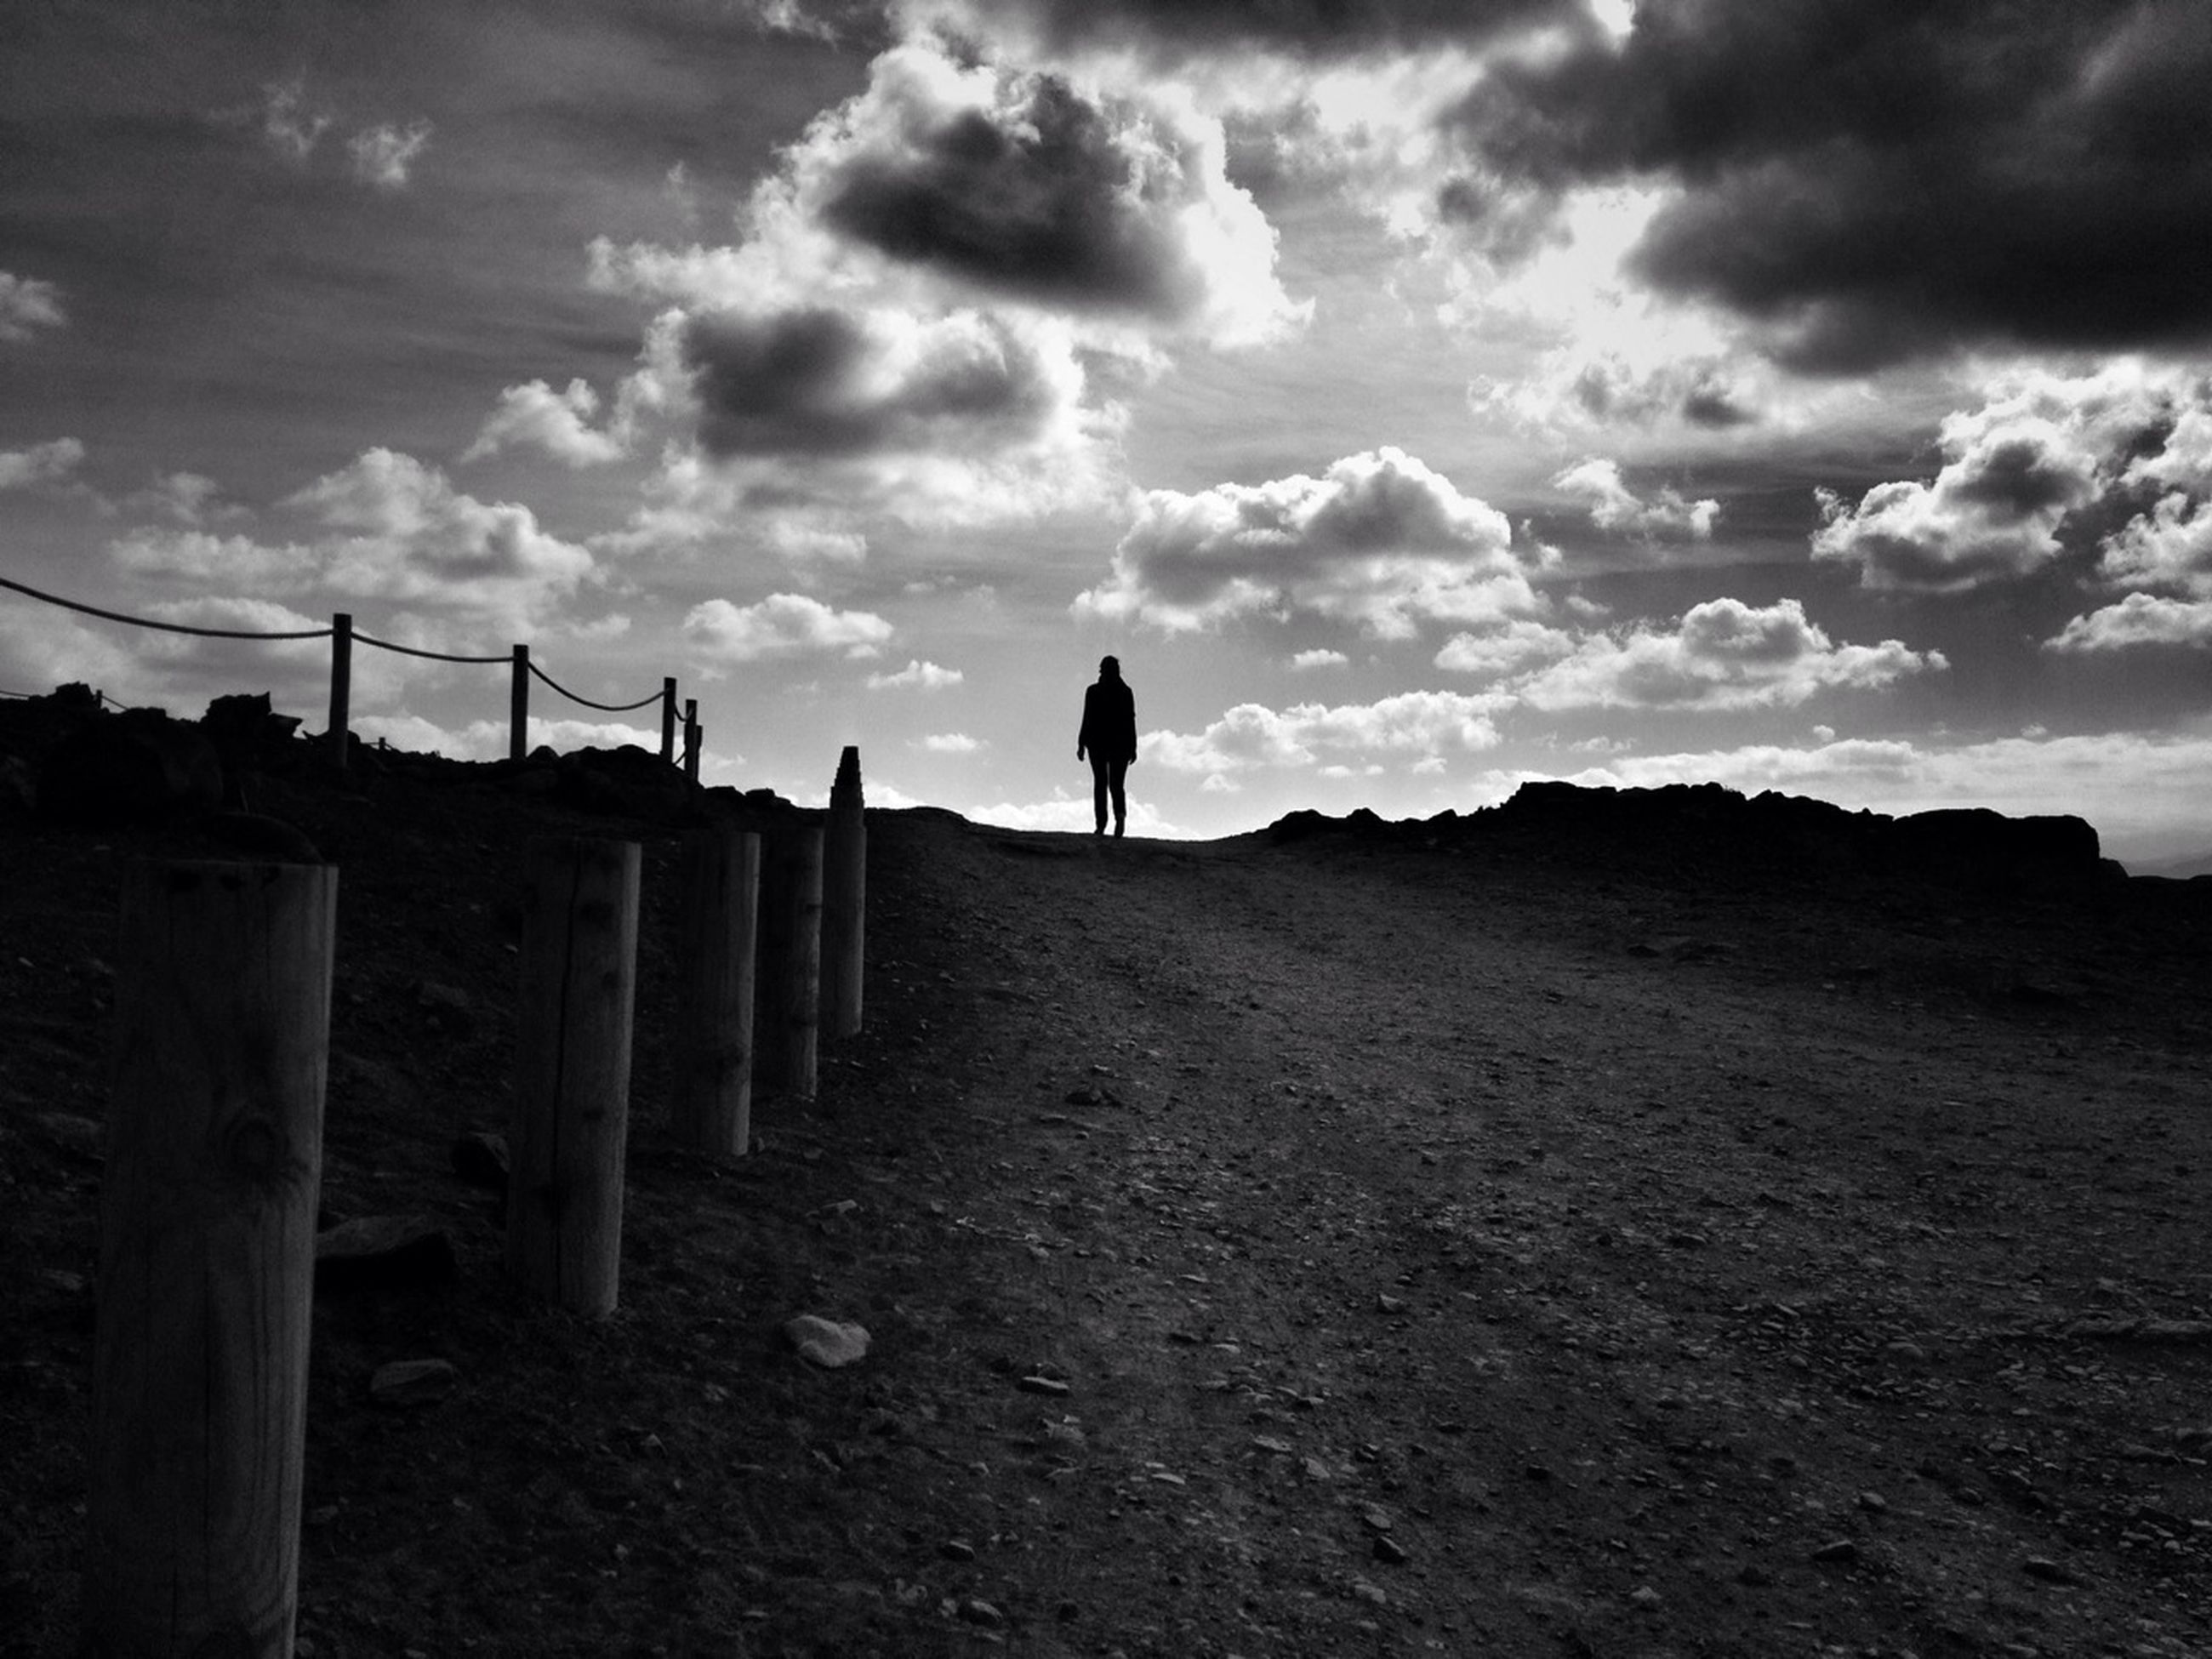 sky, rear view, cloud - sky, full length, lifestyles, men, standing, the way forward, walking, cloudy, leisure activity, cloud, silhouette, person, tranquility, nature, landscape, tranquil scene